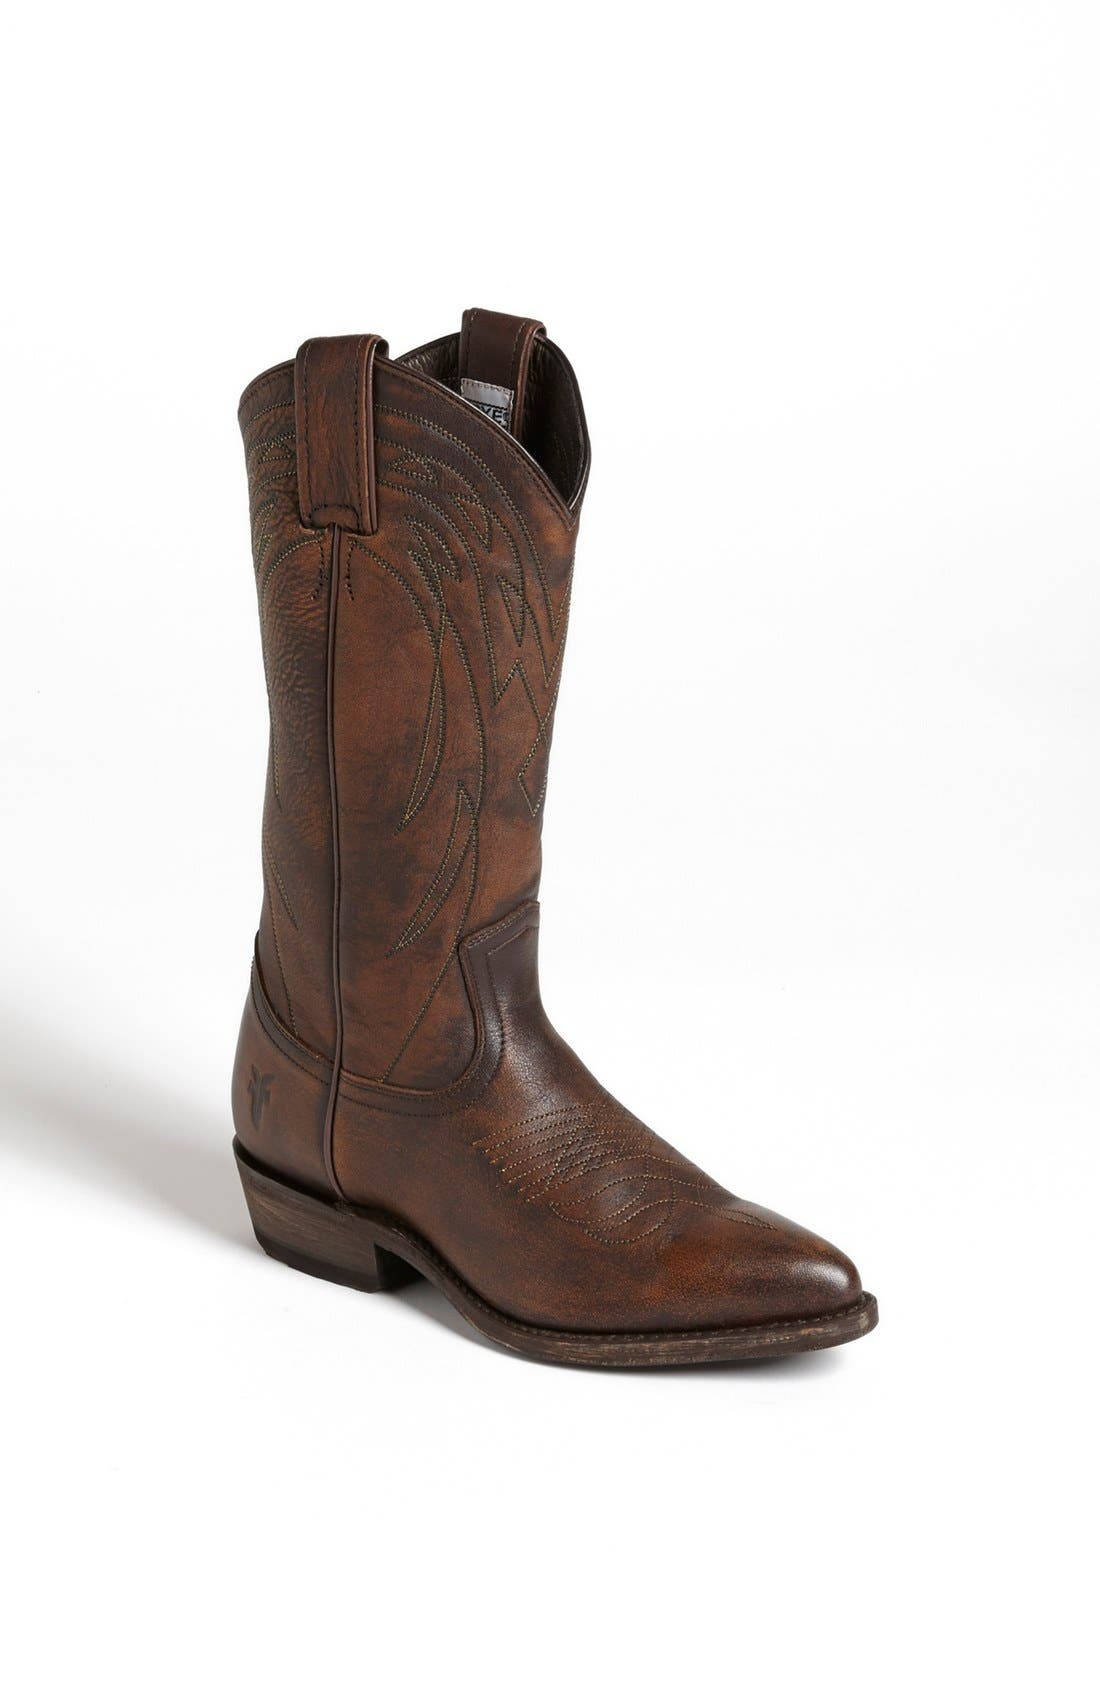 Main Image - Frye 'Billy' Leather Western Boot (Women)